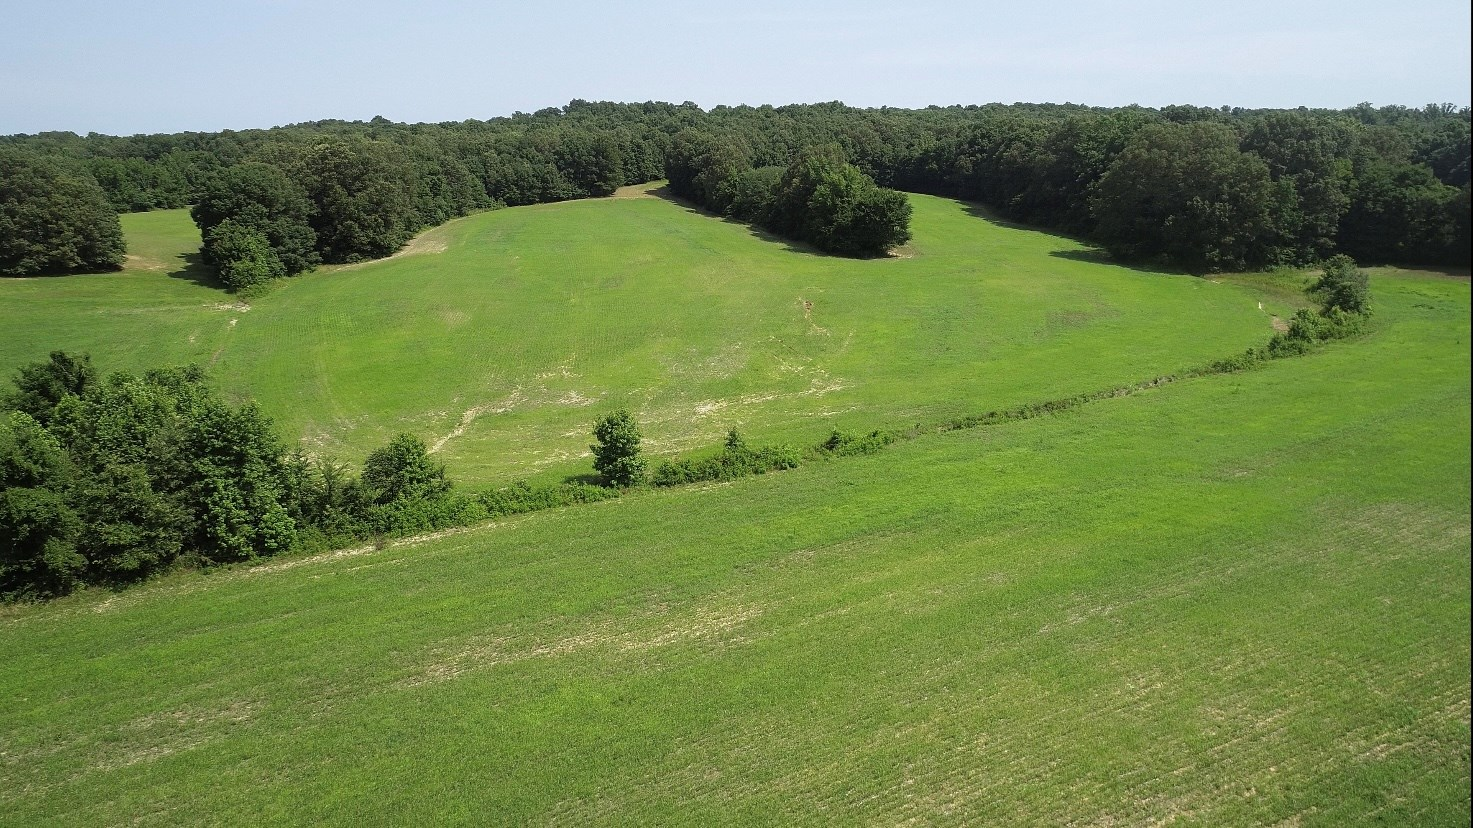 Tennessee Farm for Sale with 65 +/- Acres of Rolling Hills